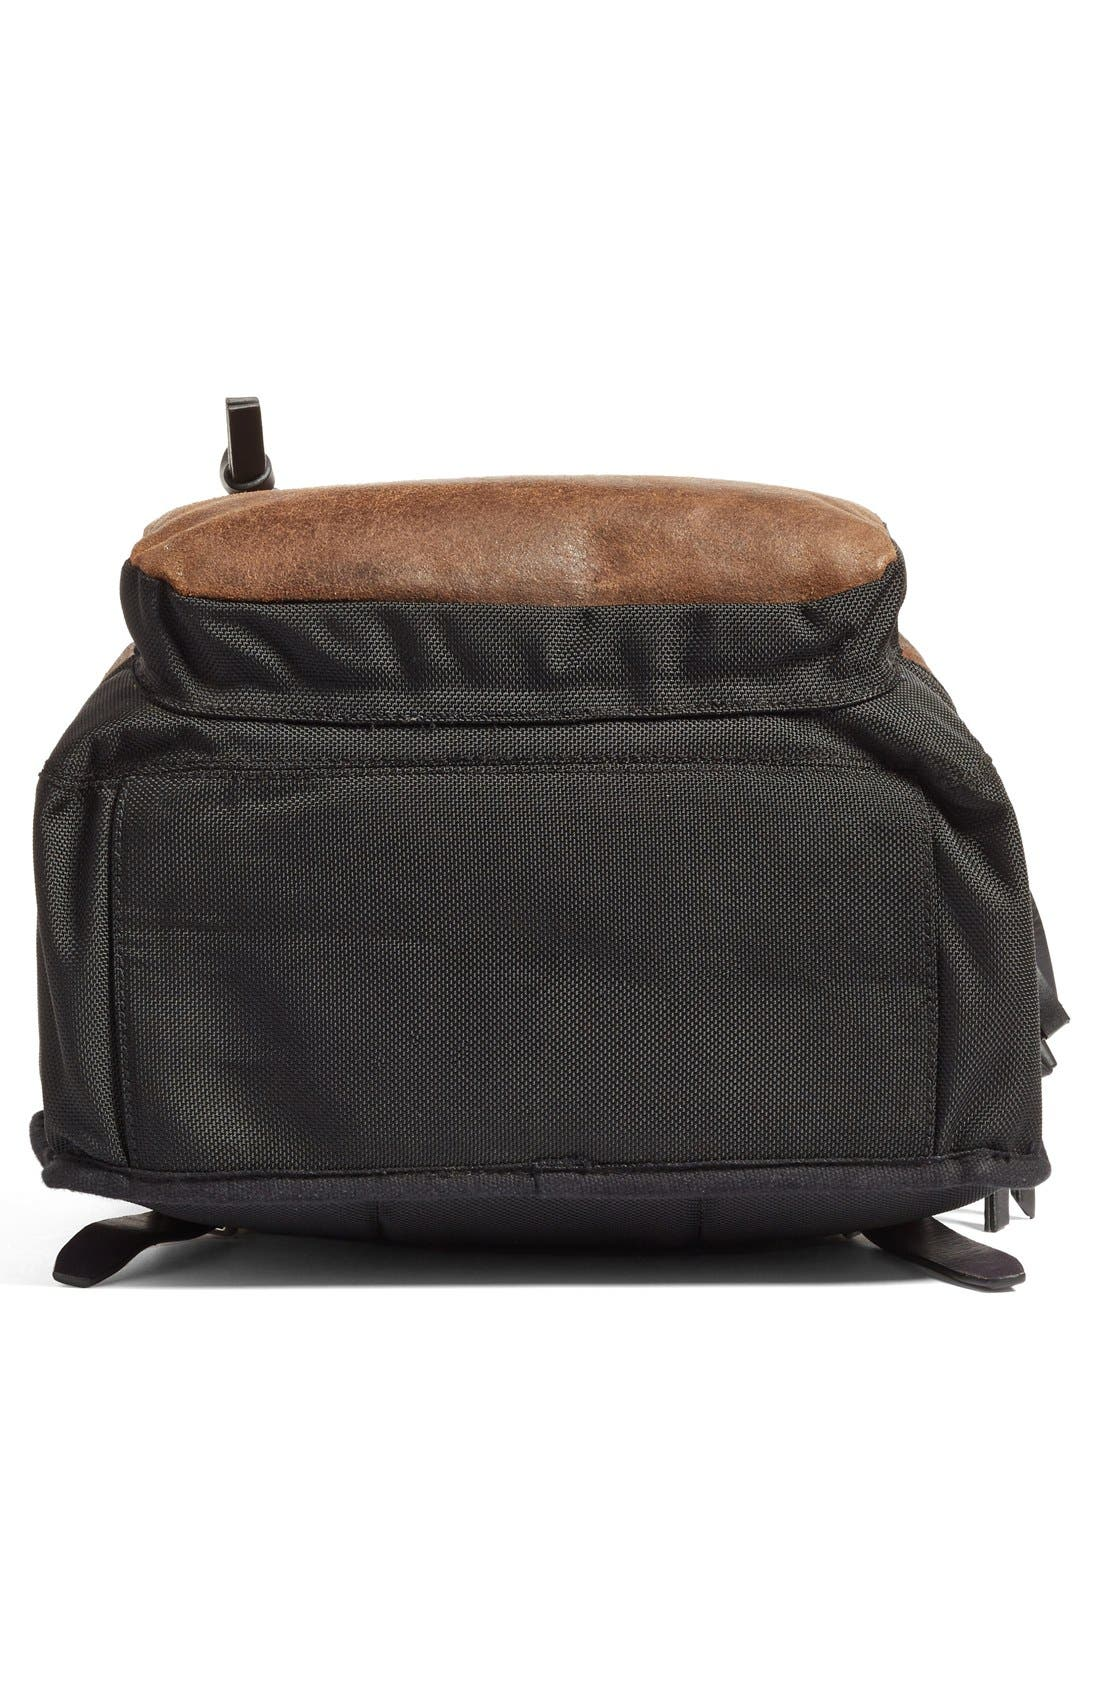 'Gibson' Suede Backpack,                             Alternate thumbnail 3, color,                             205